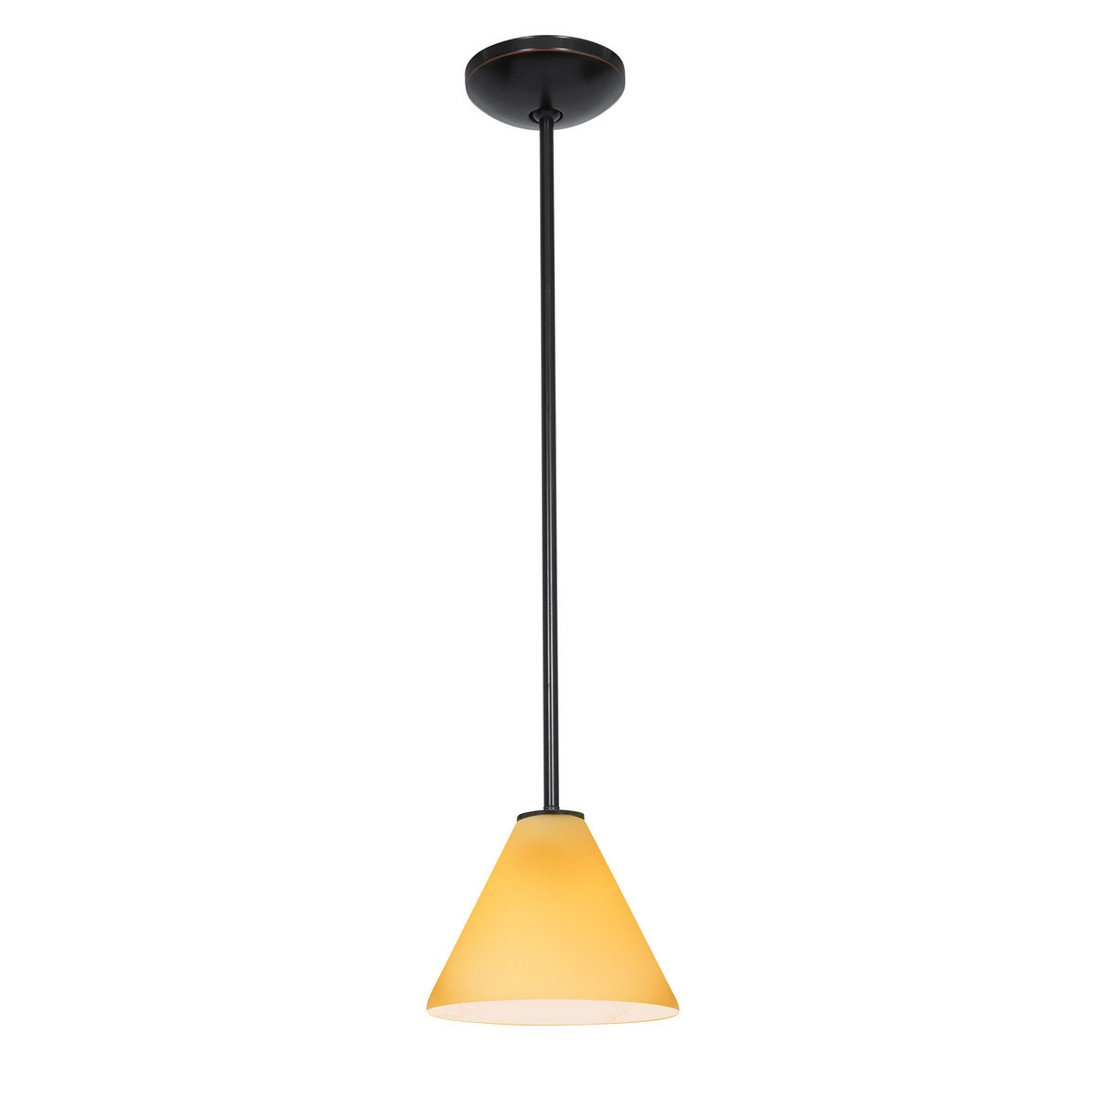 Martini - E26 LED Rod Pendant - Oil Rubbed Bronze Finish - Amber Glass Shade